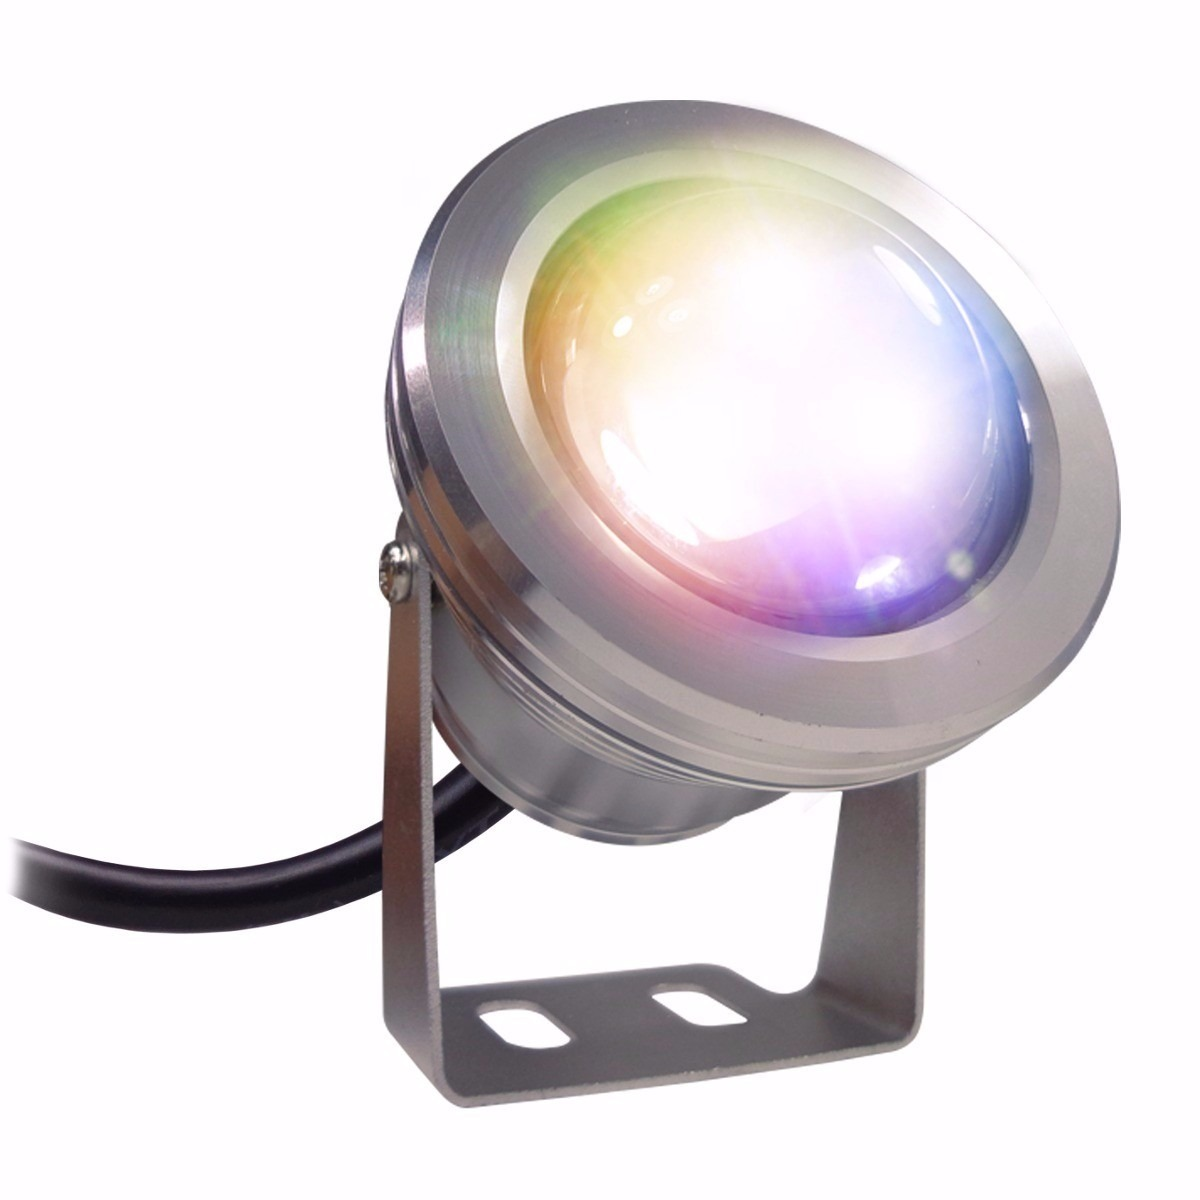 Reflector led rgb 12v para jardin sumergible decoracion - Led para jardin ...